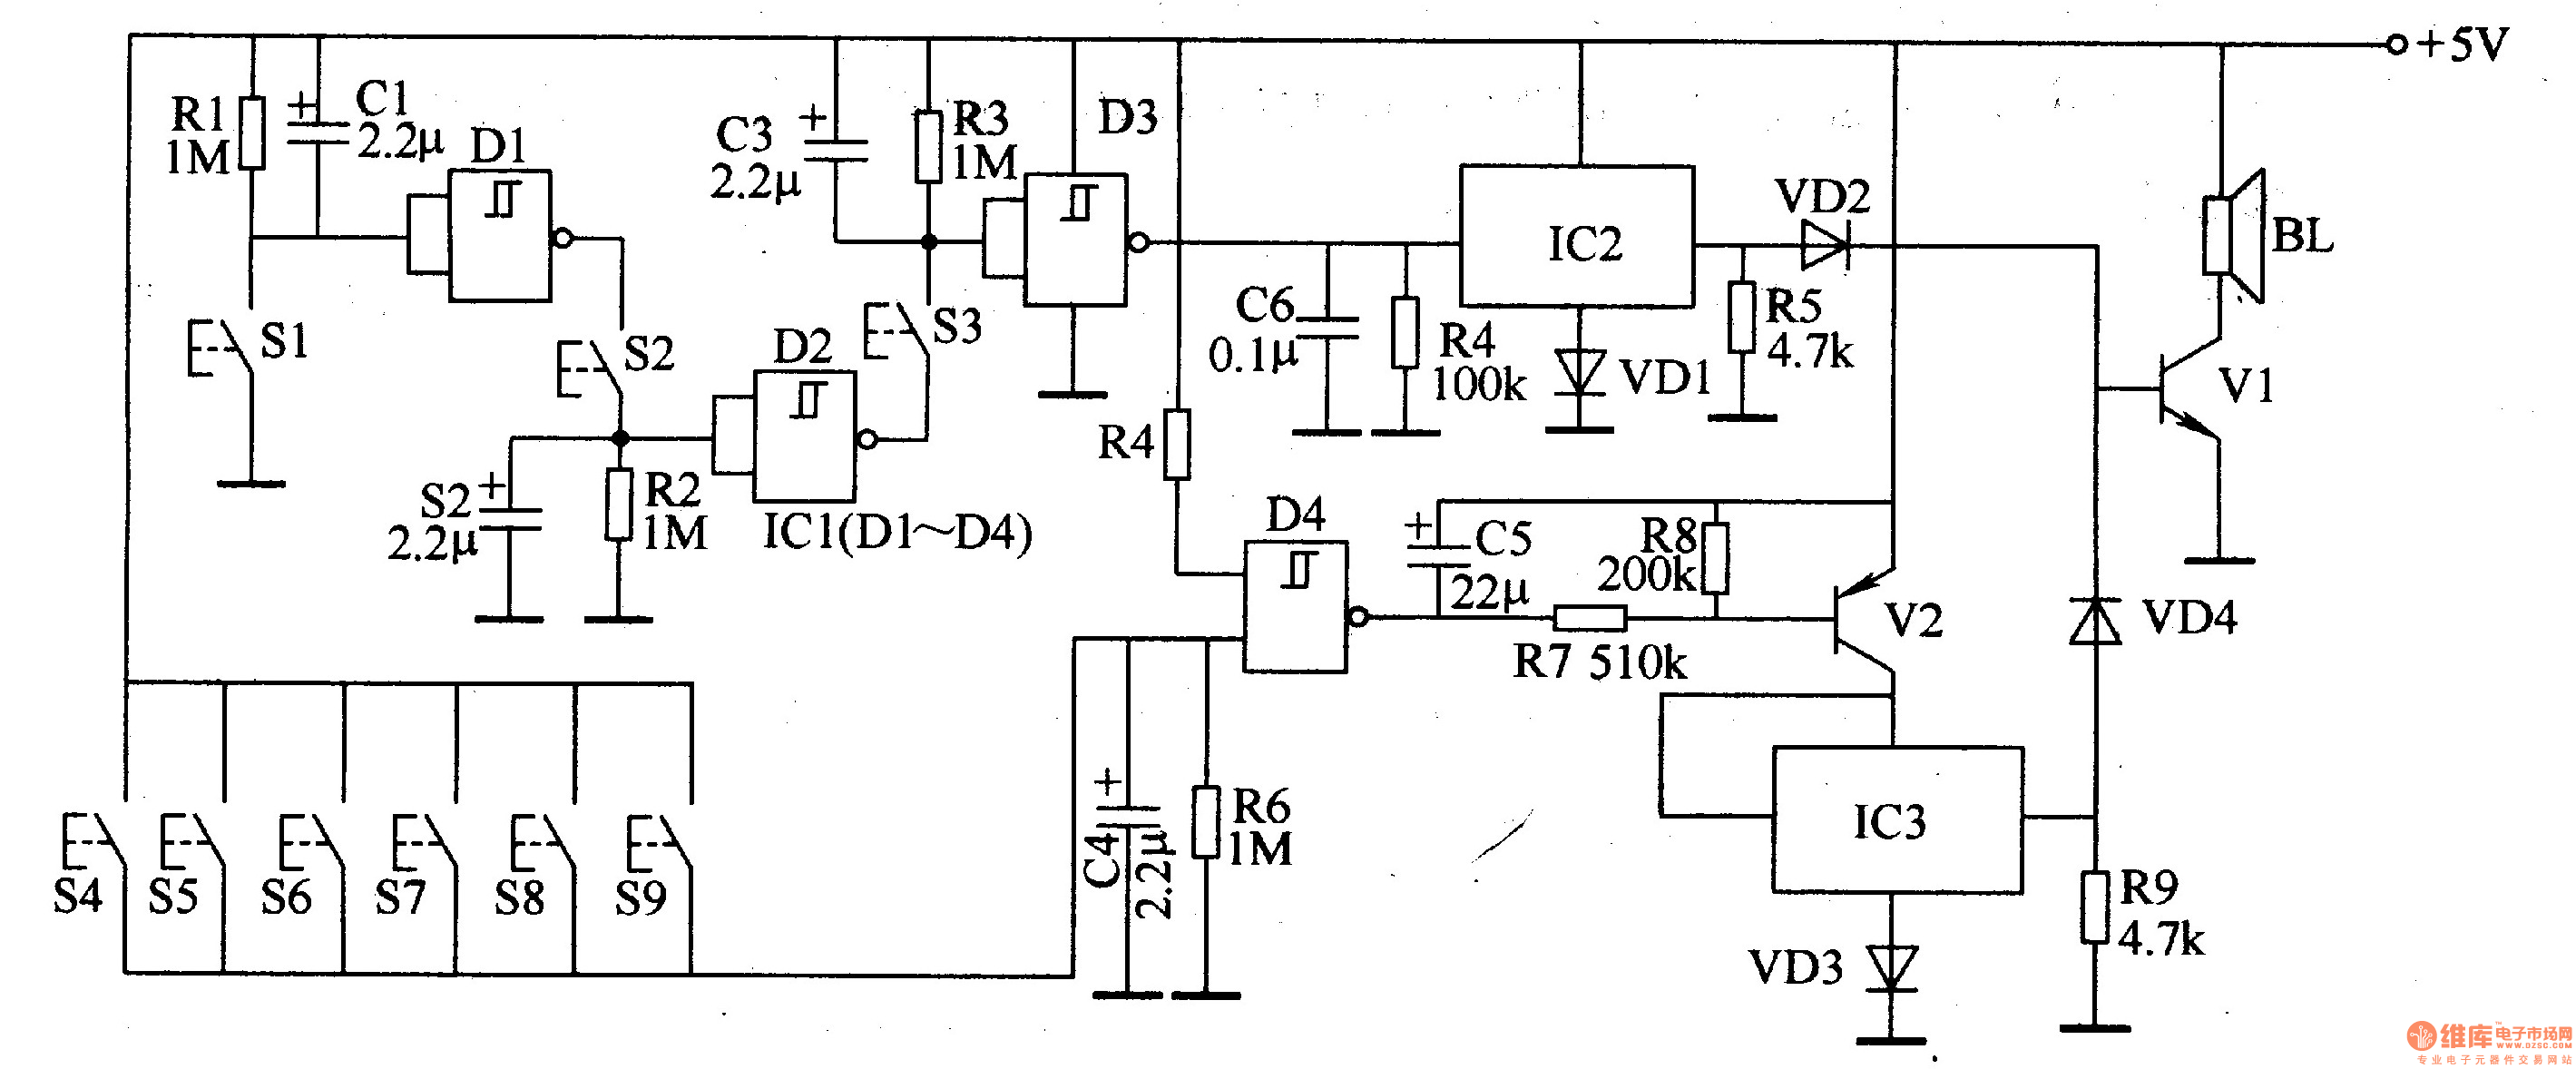 password electronic doorbell 2 - electrical equipment circuit - circuit diagram